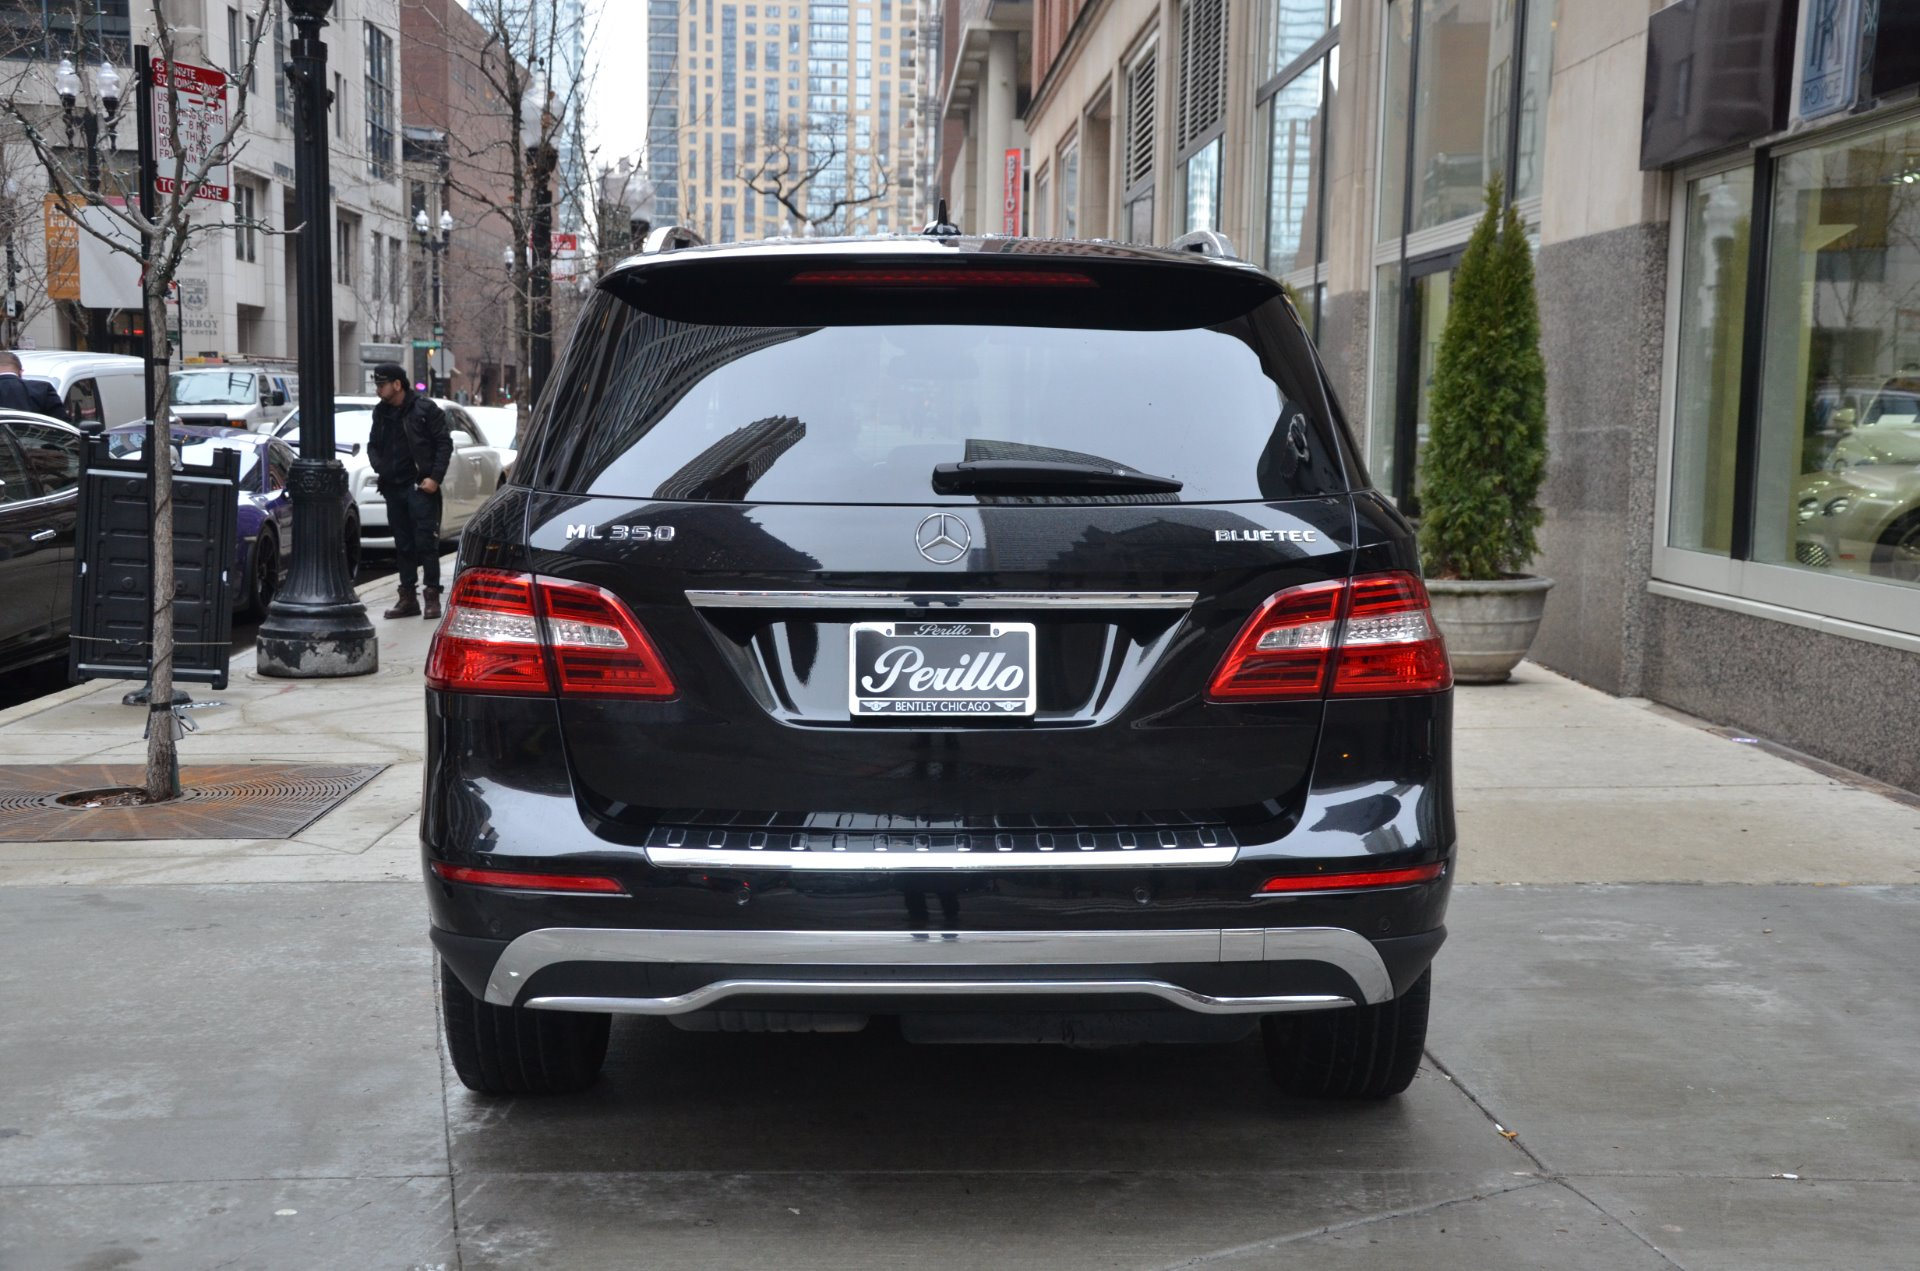 2012 mercedes benz m class ml 350 bluetec stock b882ab for Used mercedes benz chicago